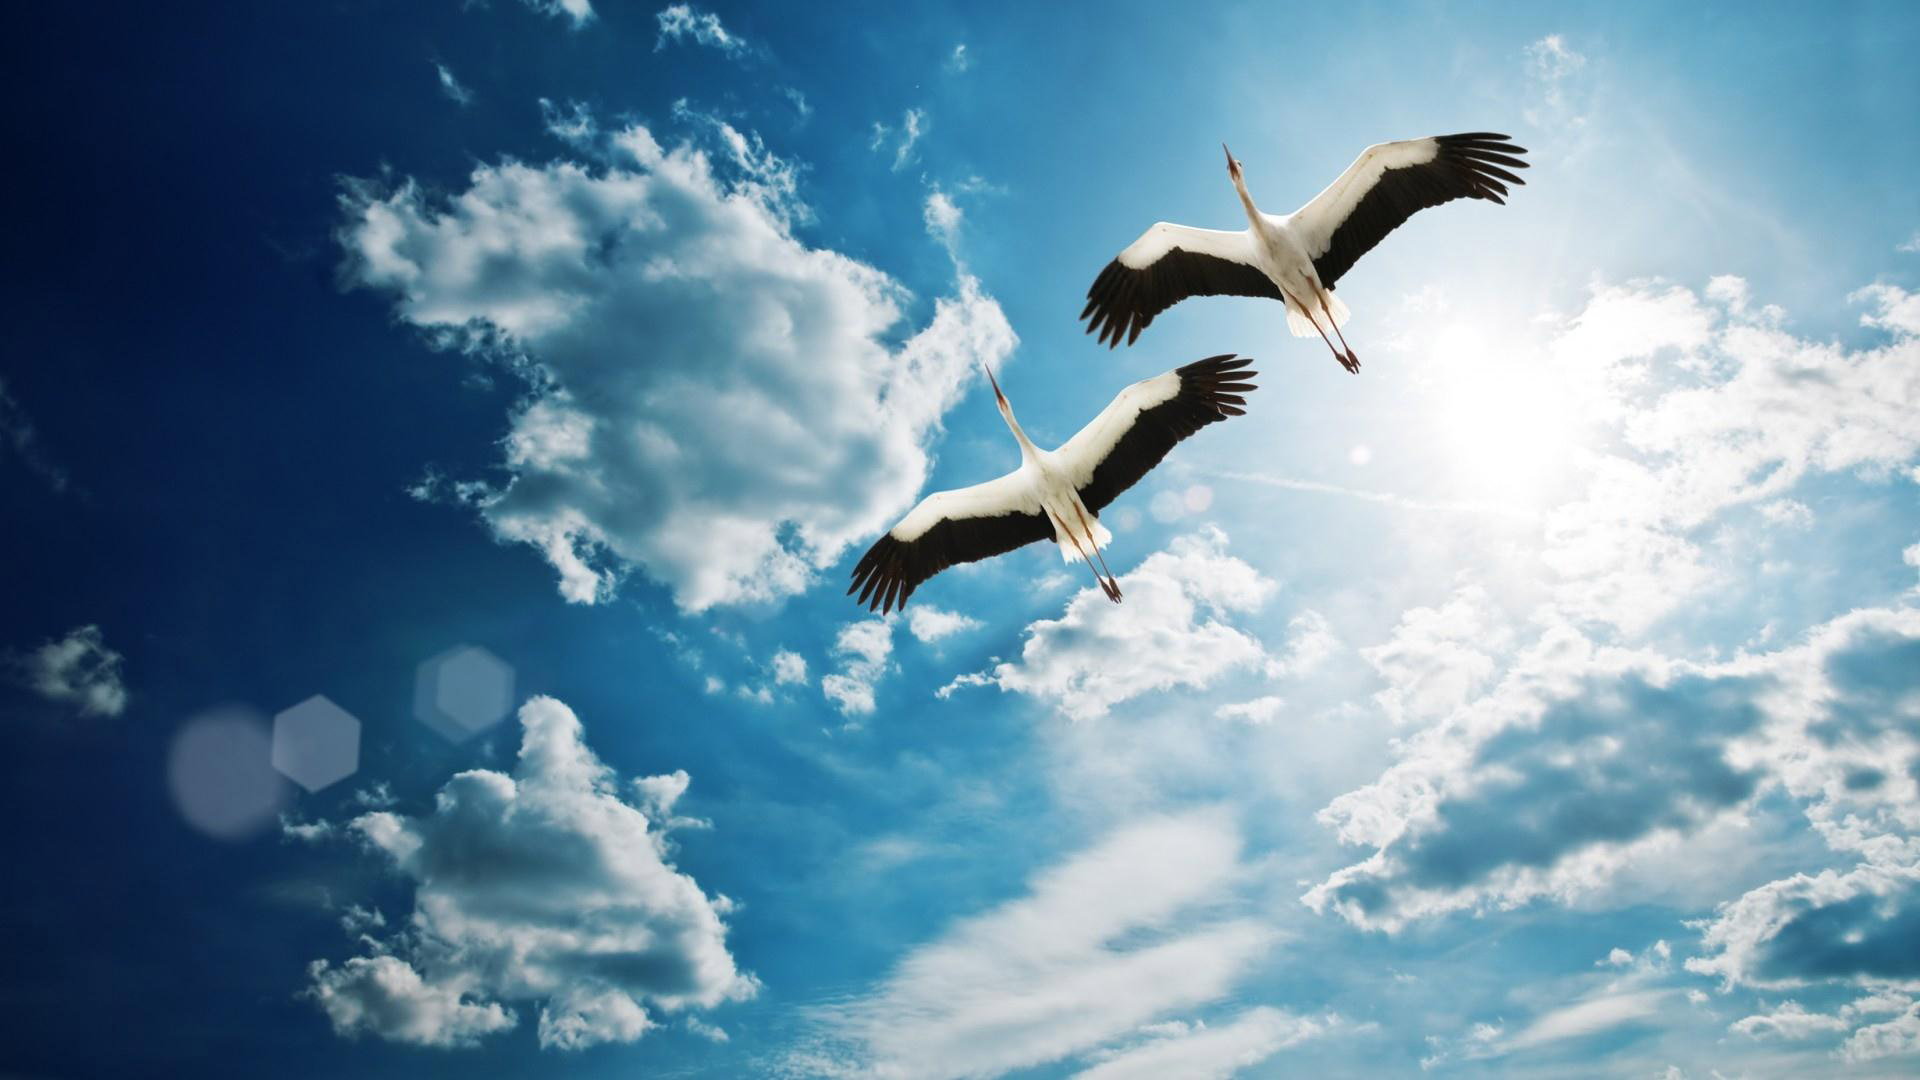 hd wallpaper birds flying 19201080 wallpaper wallpapers55com 1920x1080